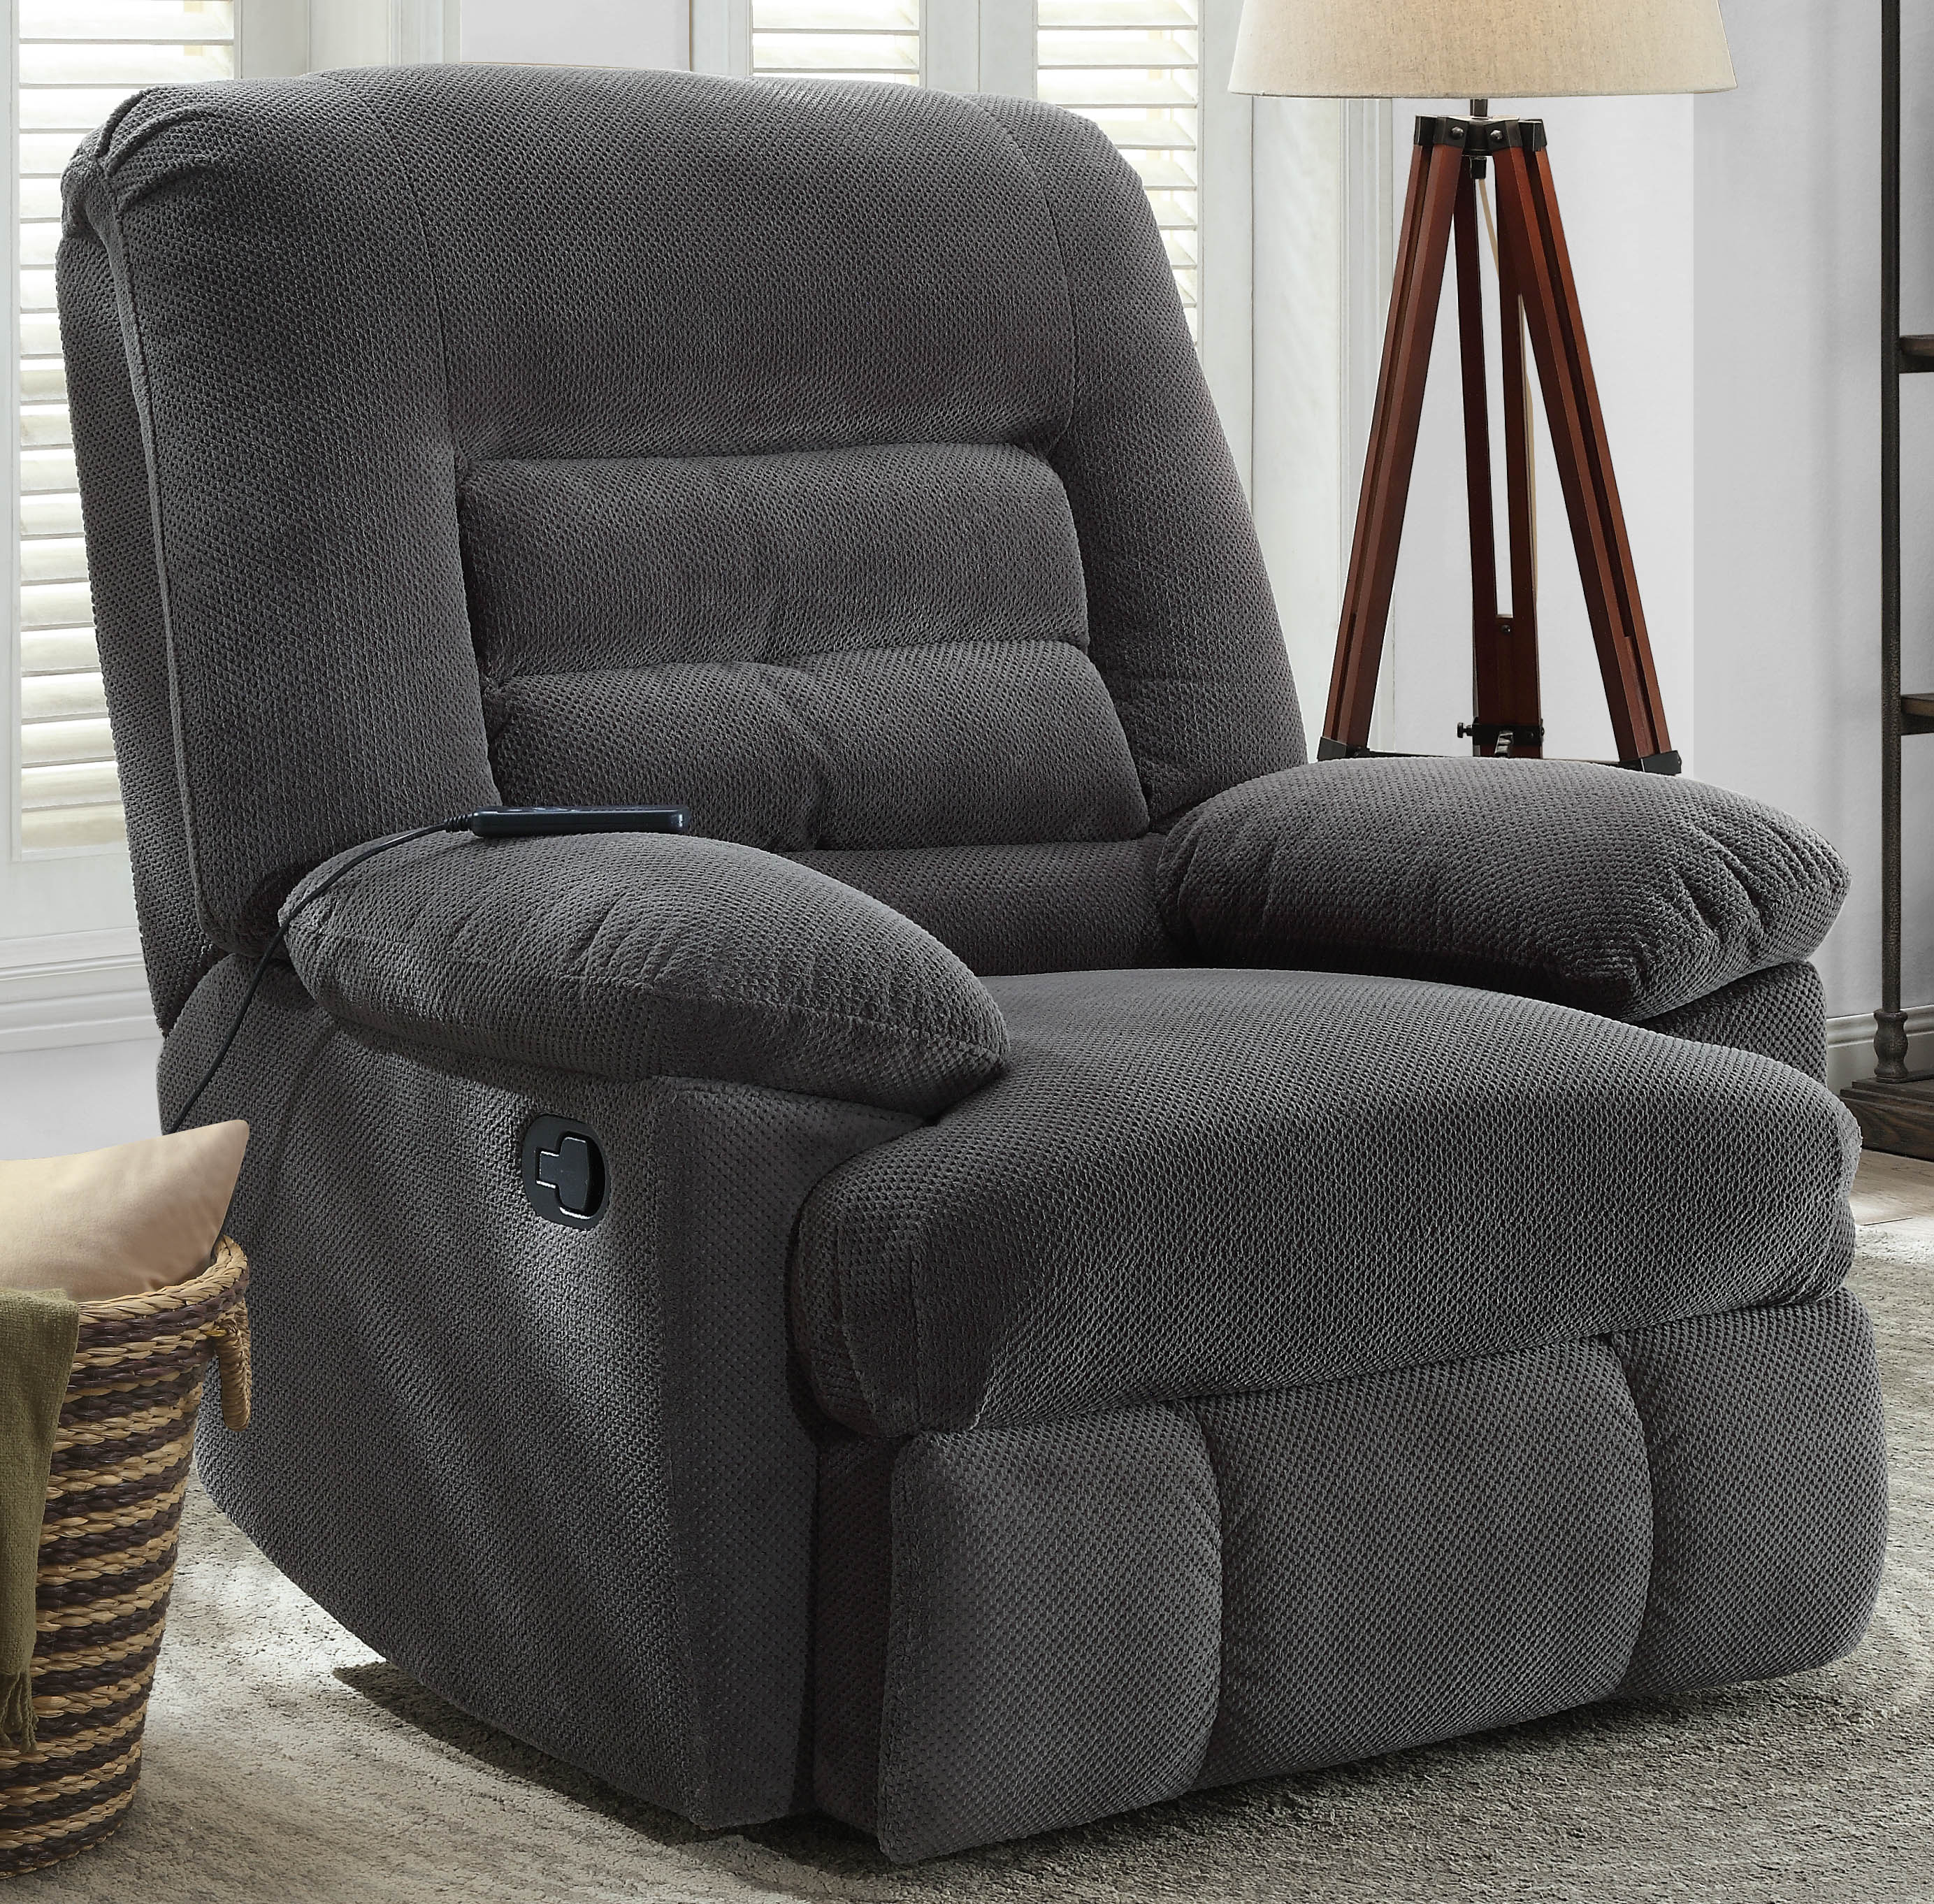 for recliners recliner chair sofa home decorating and ideas boy mag lazy big man things design tall